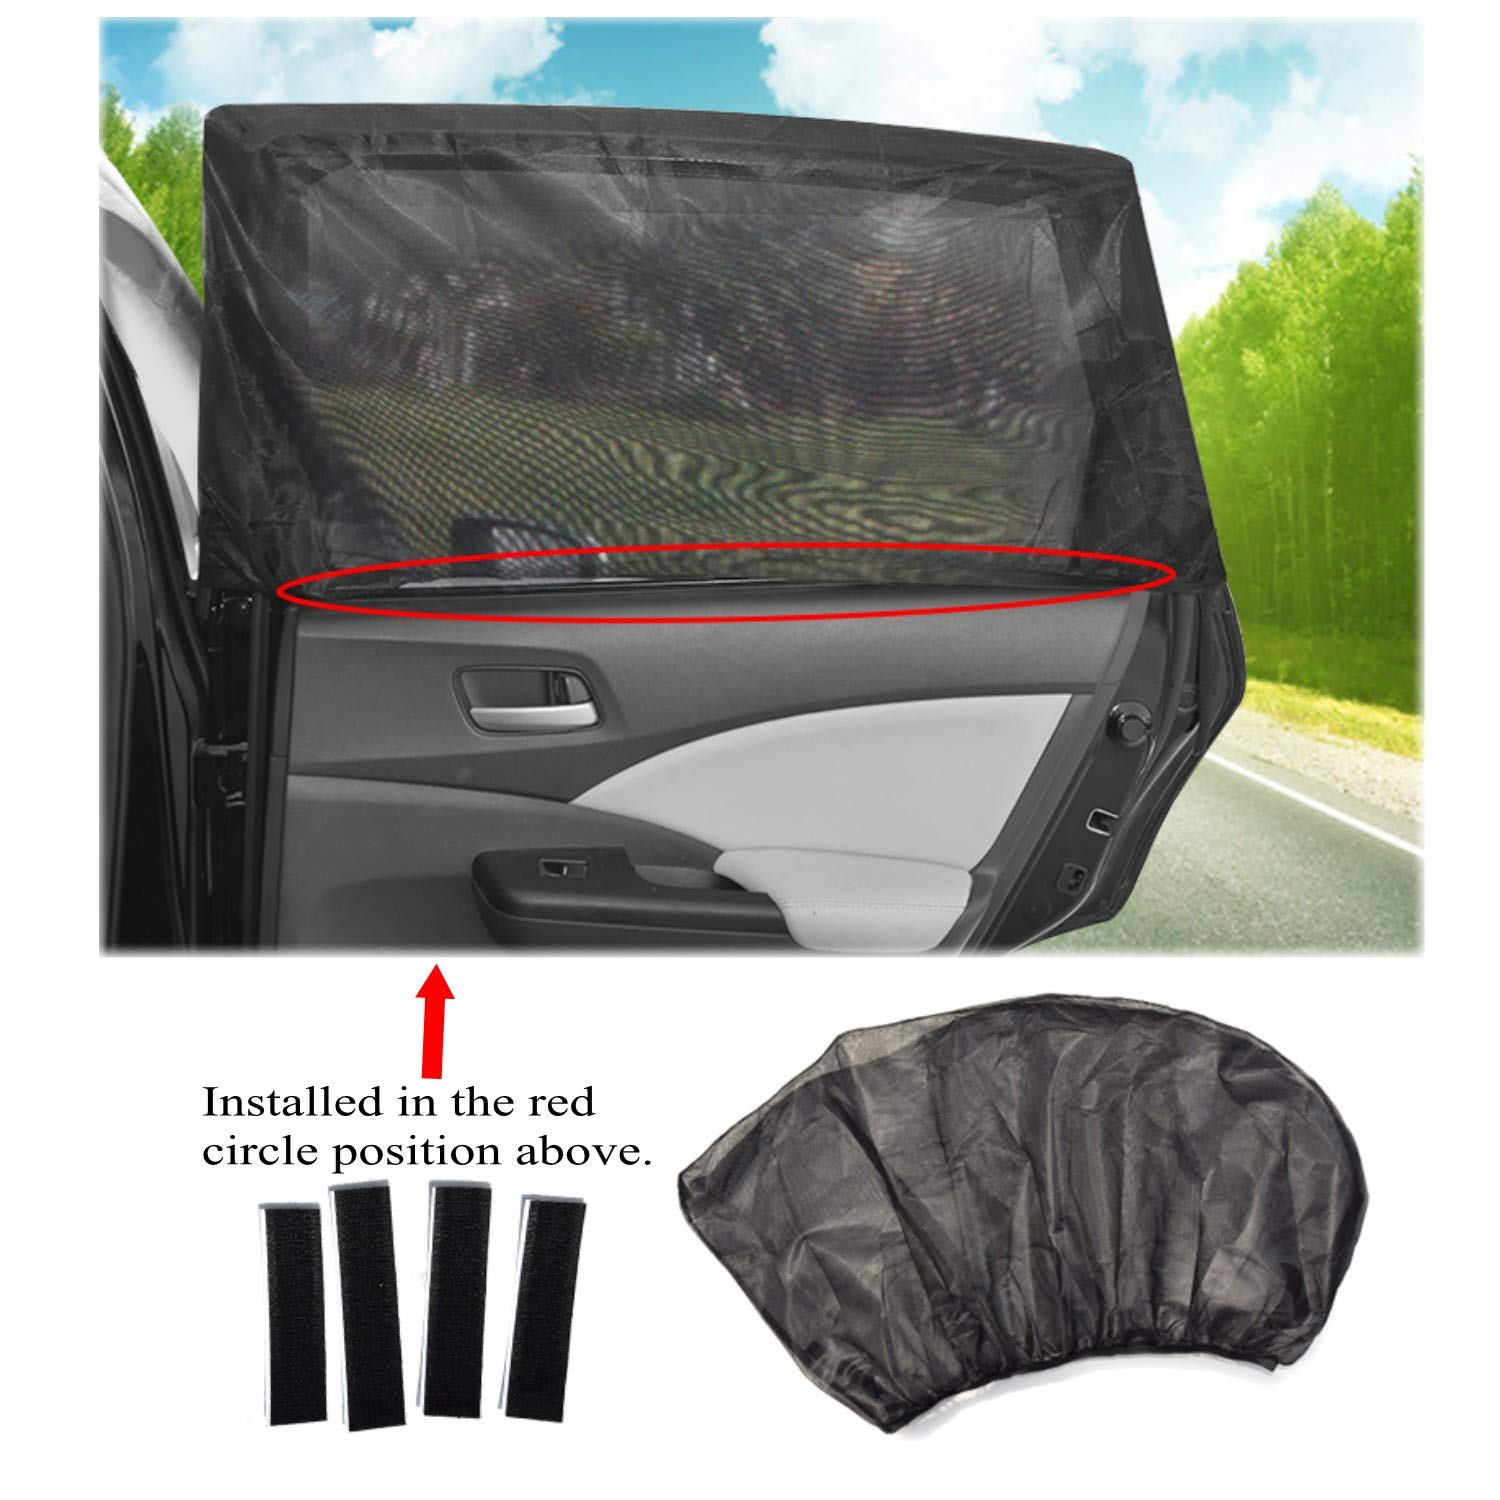 ZHONG AN Universal Sunscreen Car Baby 2 Pieces for Most Car Side Windows Gr.M for Car with UV Protection for Kids Sunscreen Car Curtain Summer